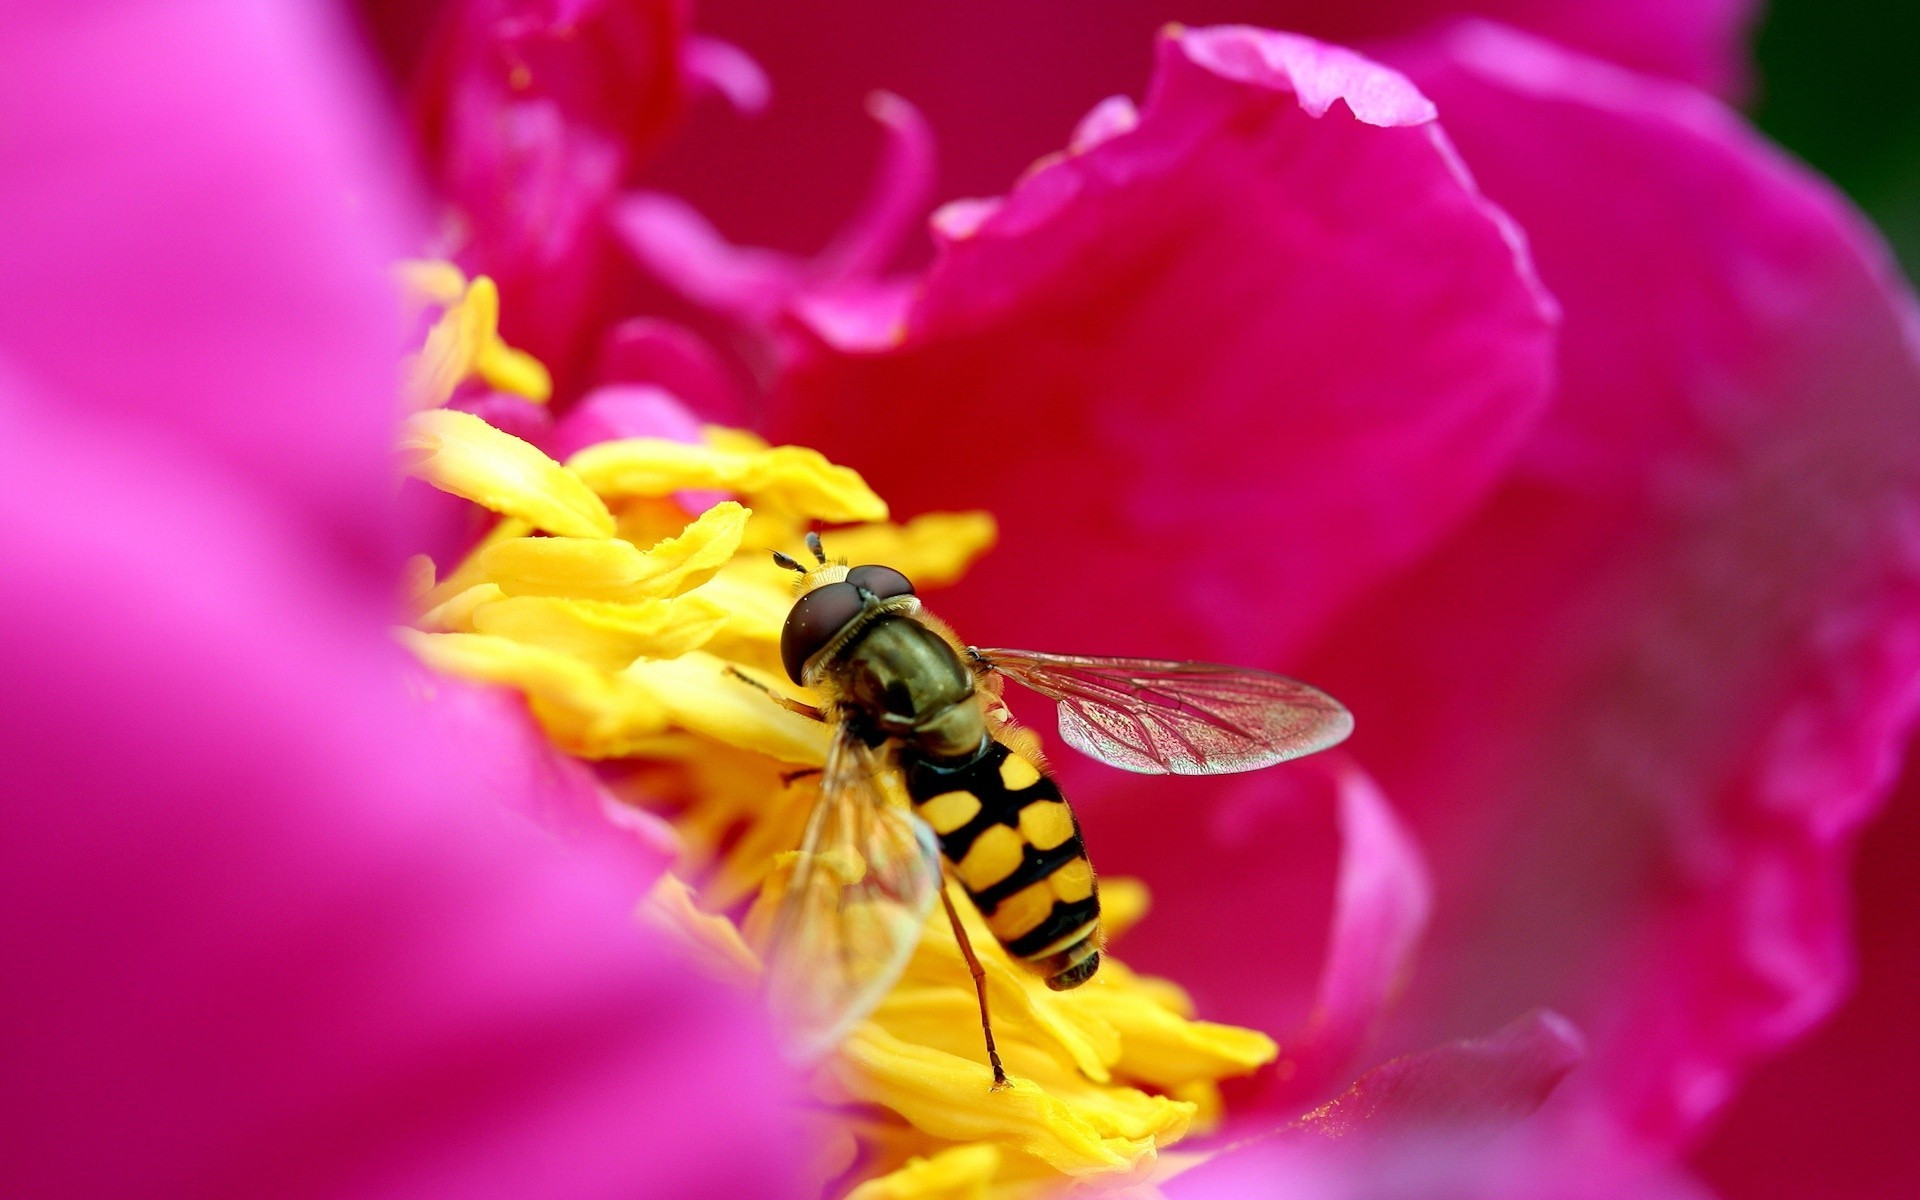 Bee on a pink flower wallpaper 9171 1920x1200